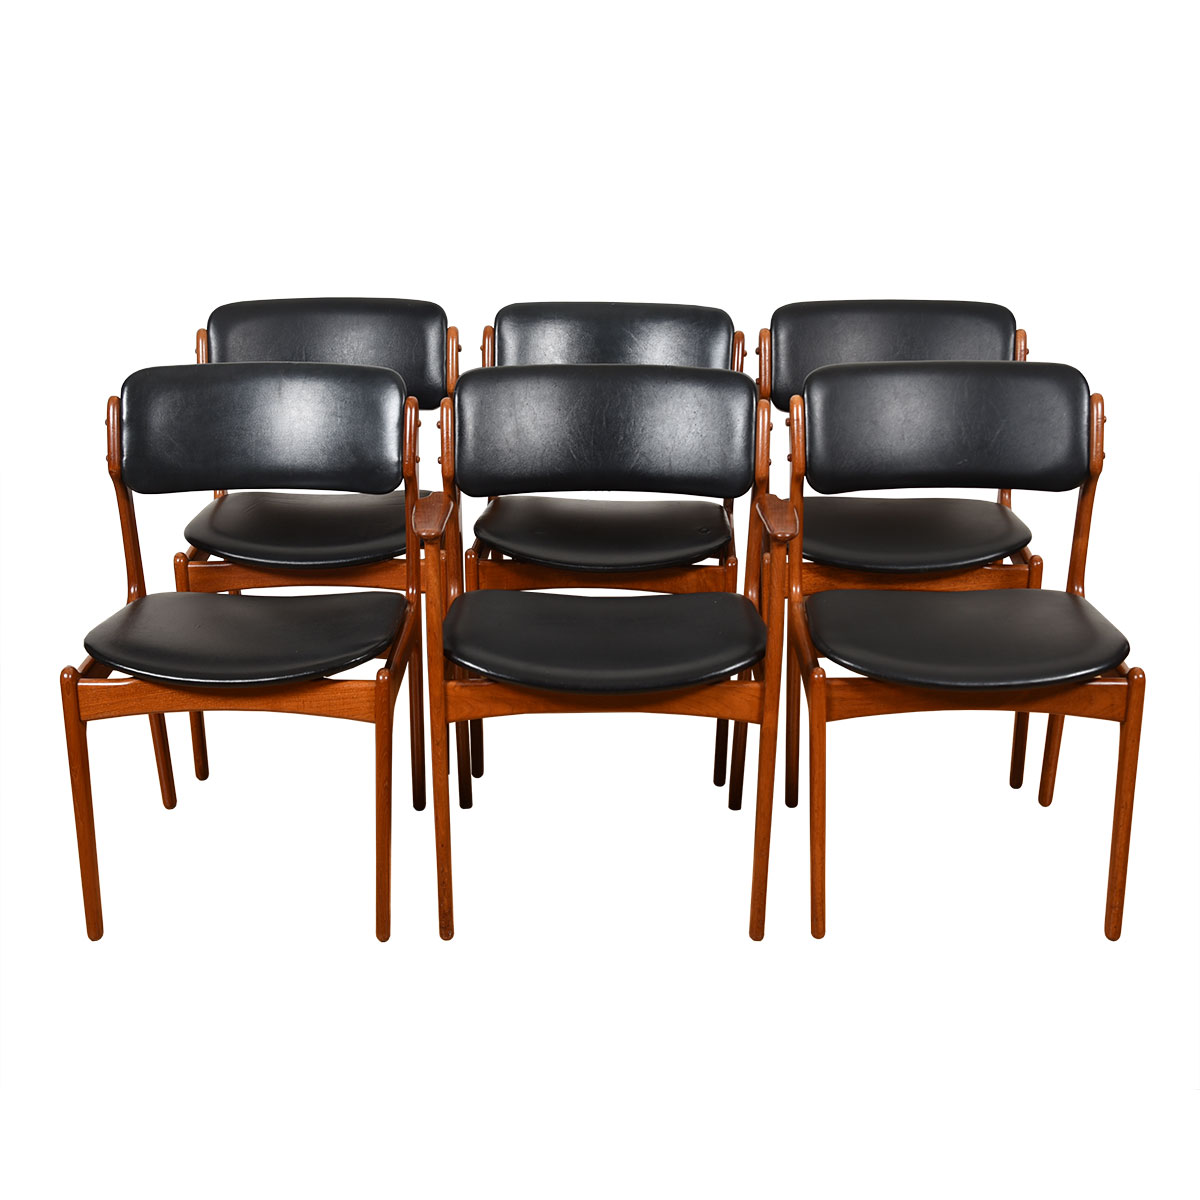 Set of 6 (1 Arm + 5 Side) Teak Dining Chairs by Erik Buch